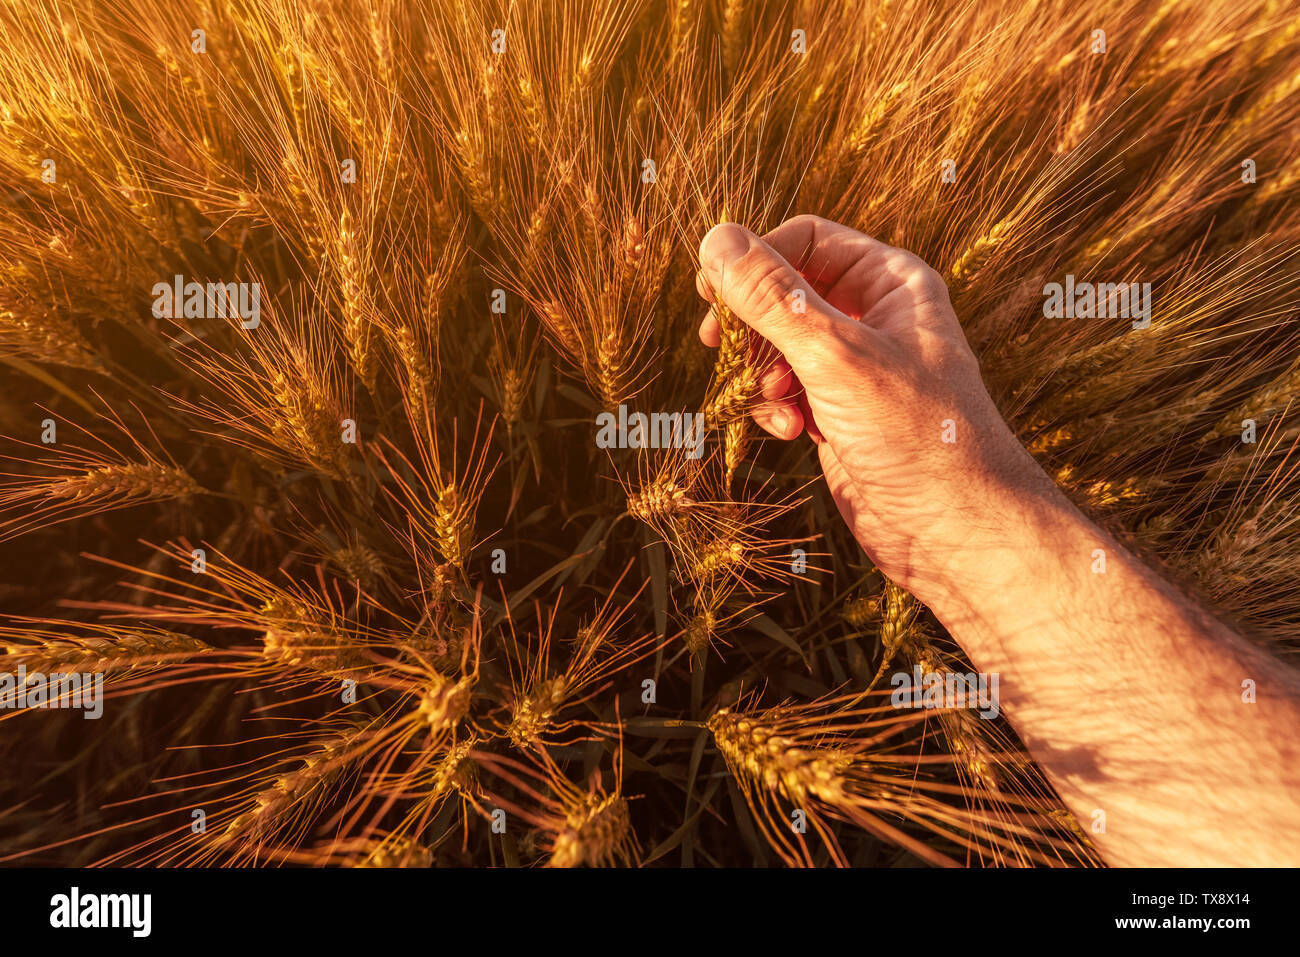 Agronomist farmer is inspecting ripening ears of wheat in field in warm summer sunset. Farm worker analyzing development of cereal crops, close up of Stock Photo